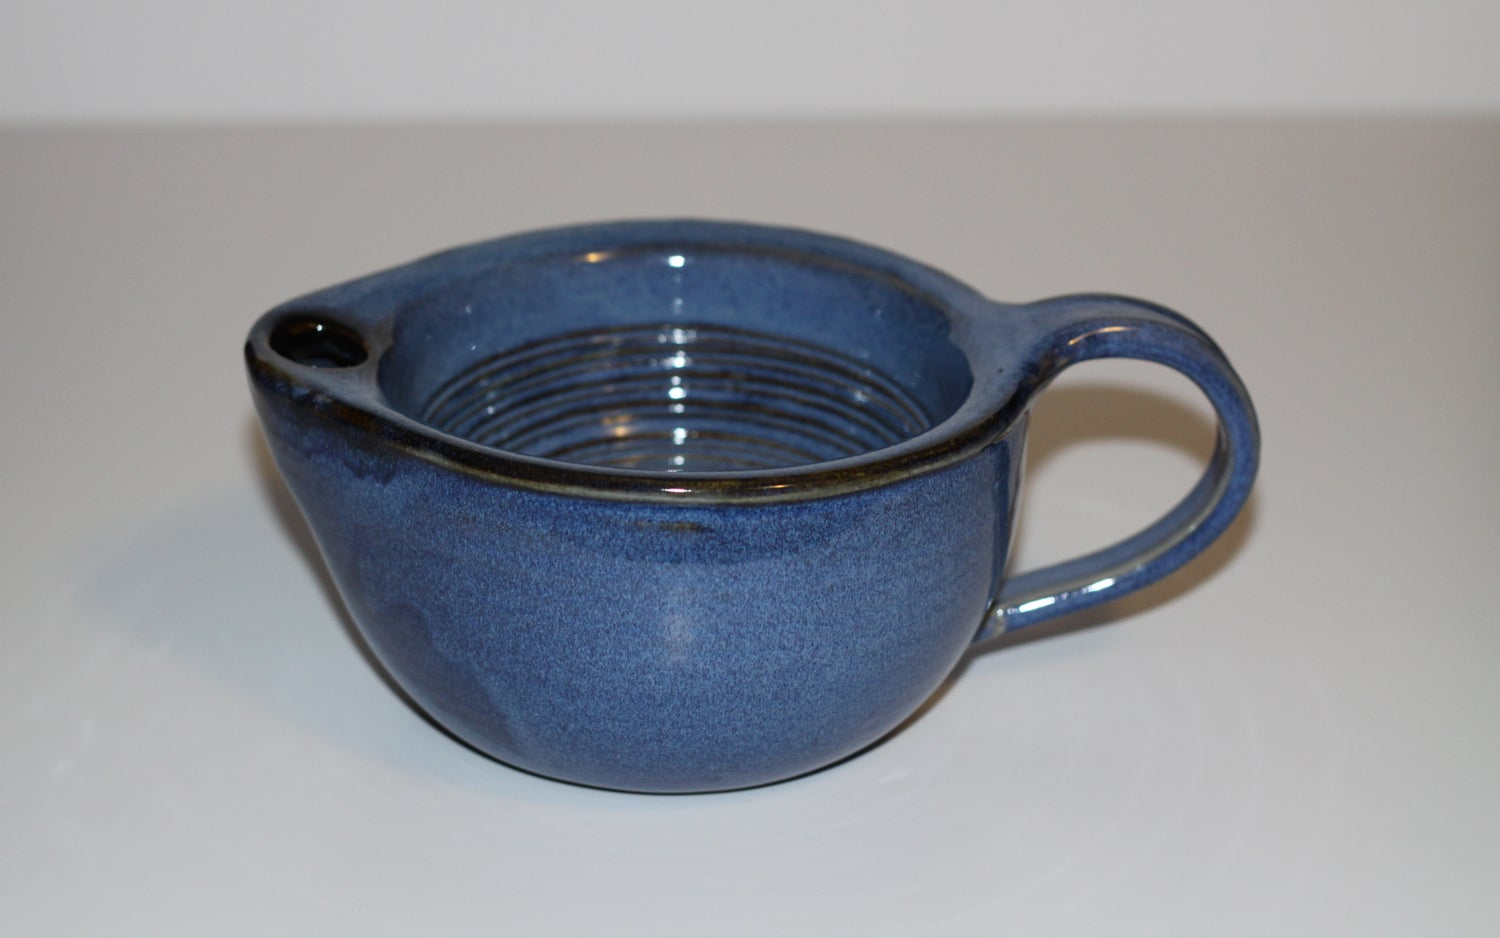 Image of Shaving Scuttle / Shaving Mug / Blue Scuttle / Ridges for Good Lather / Warm Lather / Made to Order